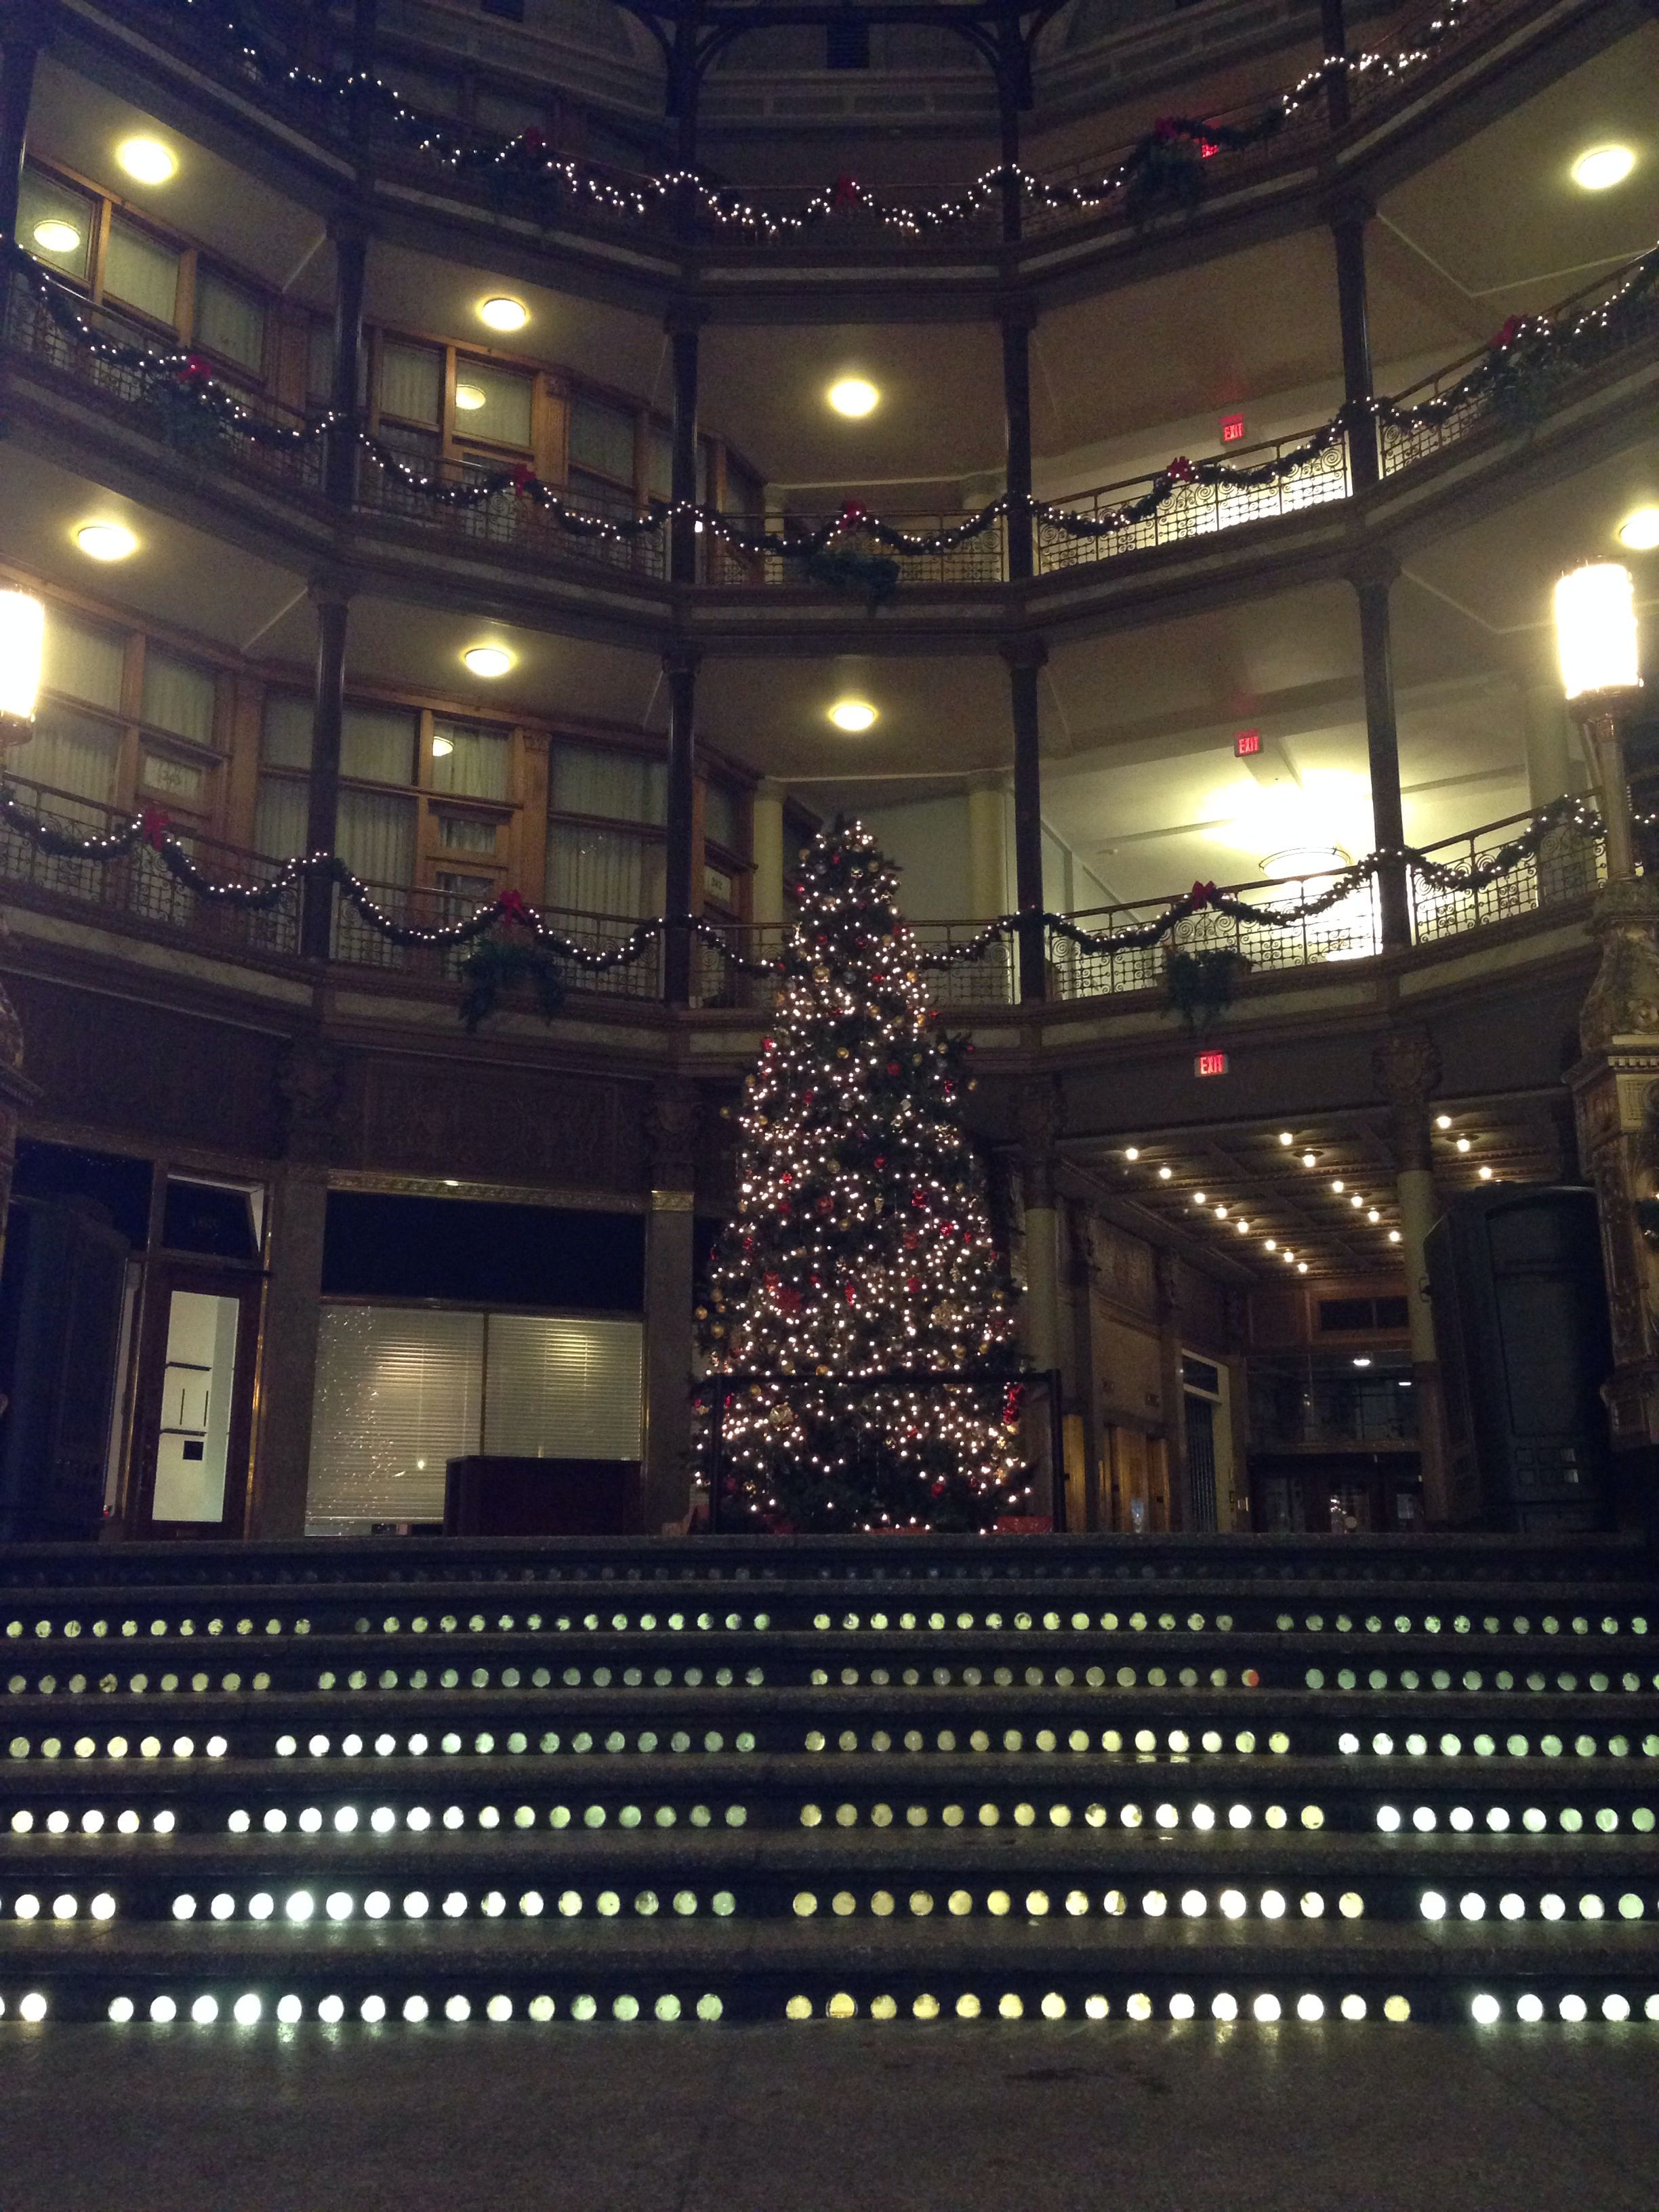 Christmas In The Old Arcade Cleveland Ohio Cleveland Ohio Broadway Shows Cleveland Rocks